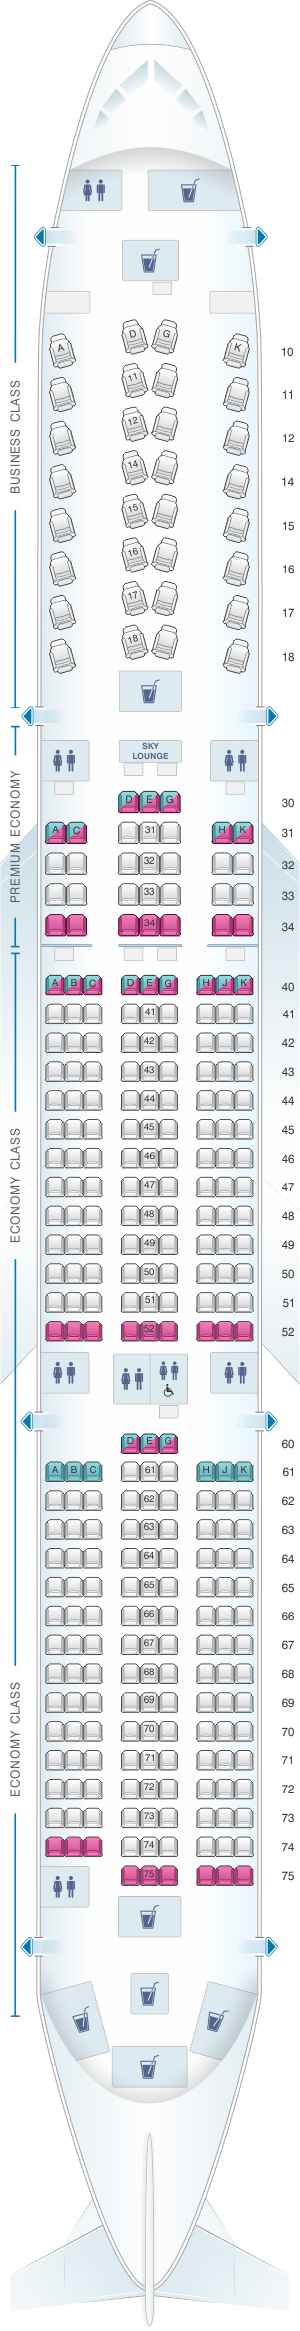 Seat Map China Airlines Airbus A350 900 China Airlines